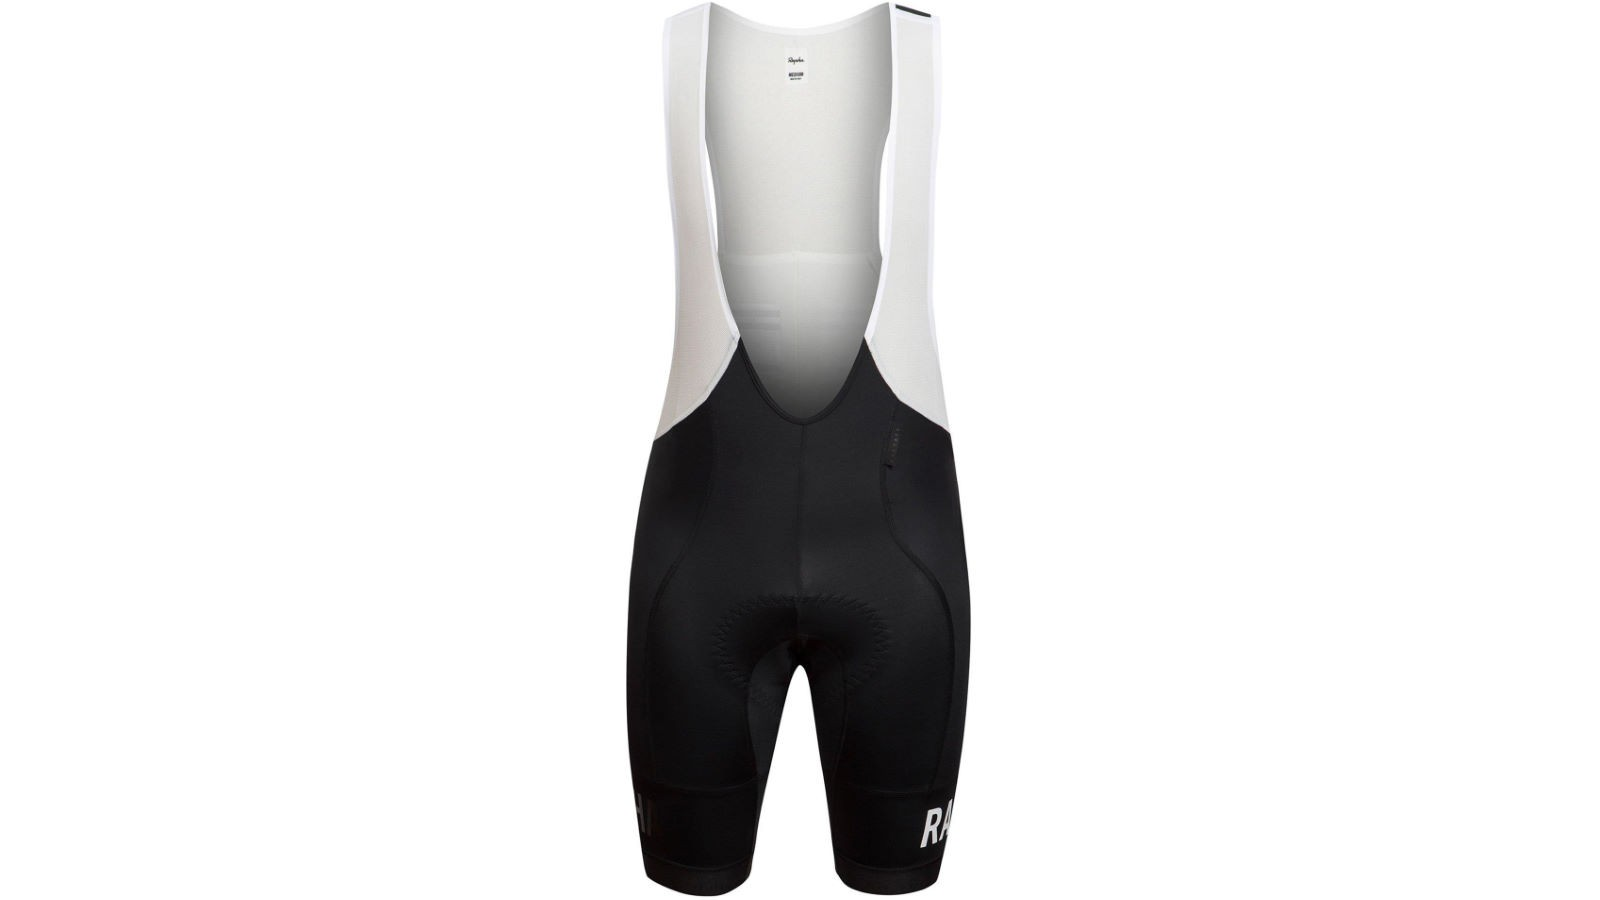 Rapha's Classic shorts are much loved